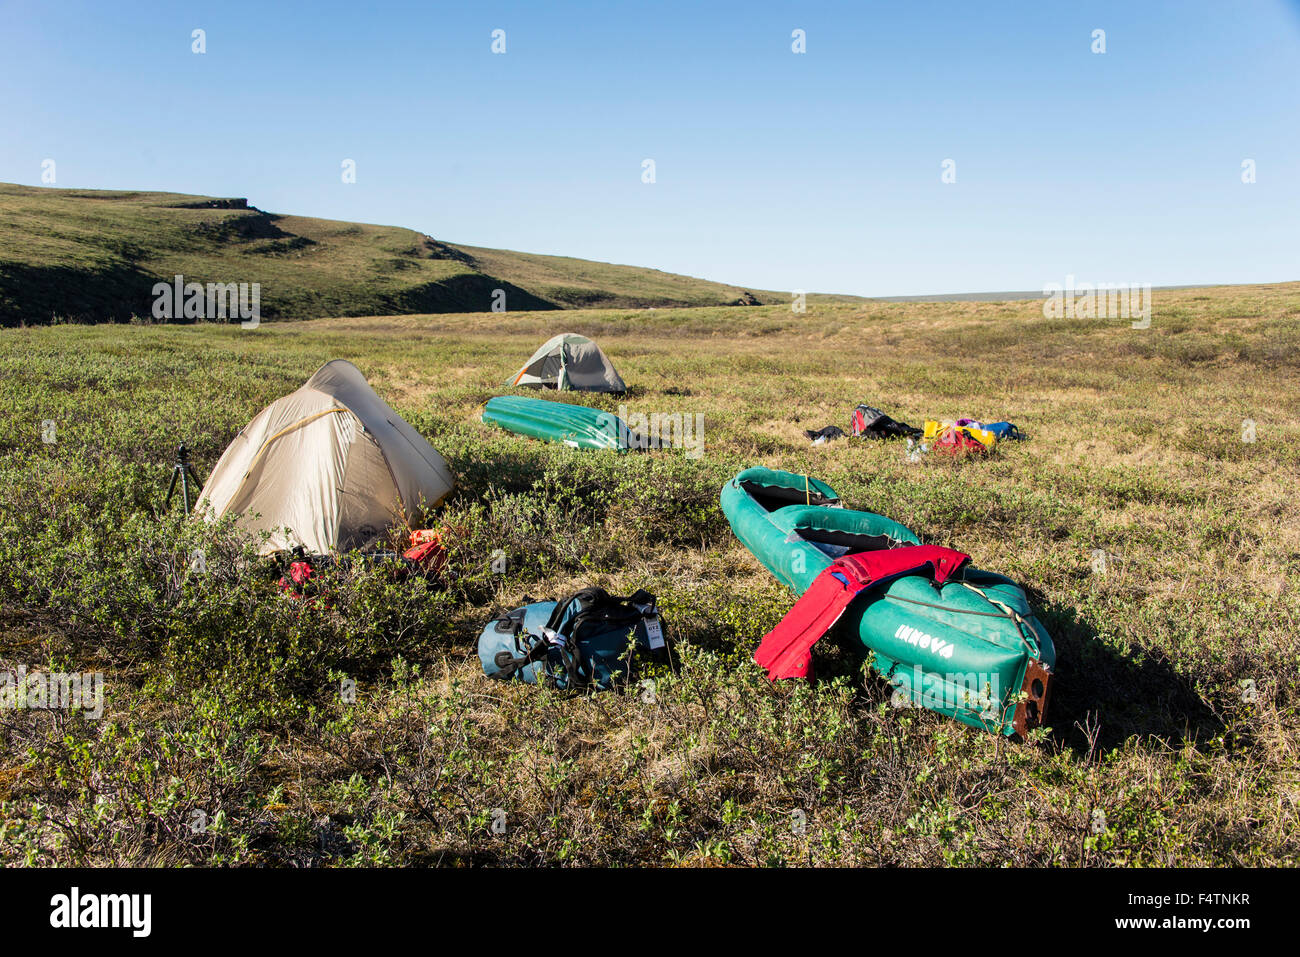 Campingplatz, camping, Expedition, national Petroleum Reserve, Petroleum Reserve, Alaska, USA, Amerika, reservieren, Stockbild